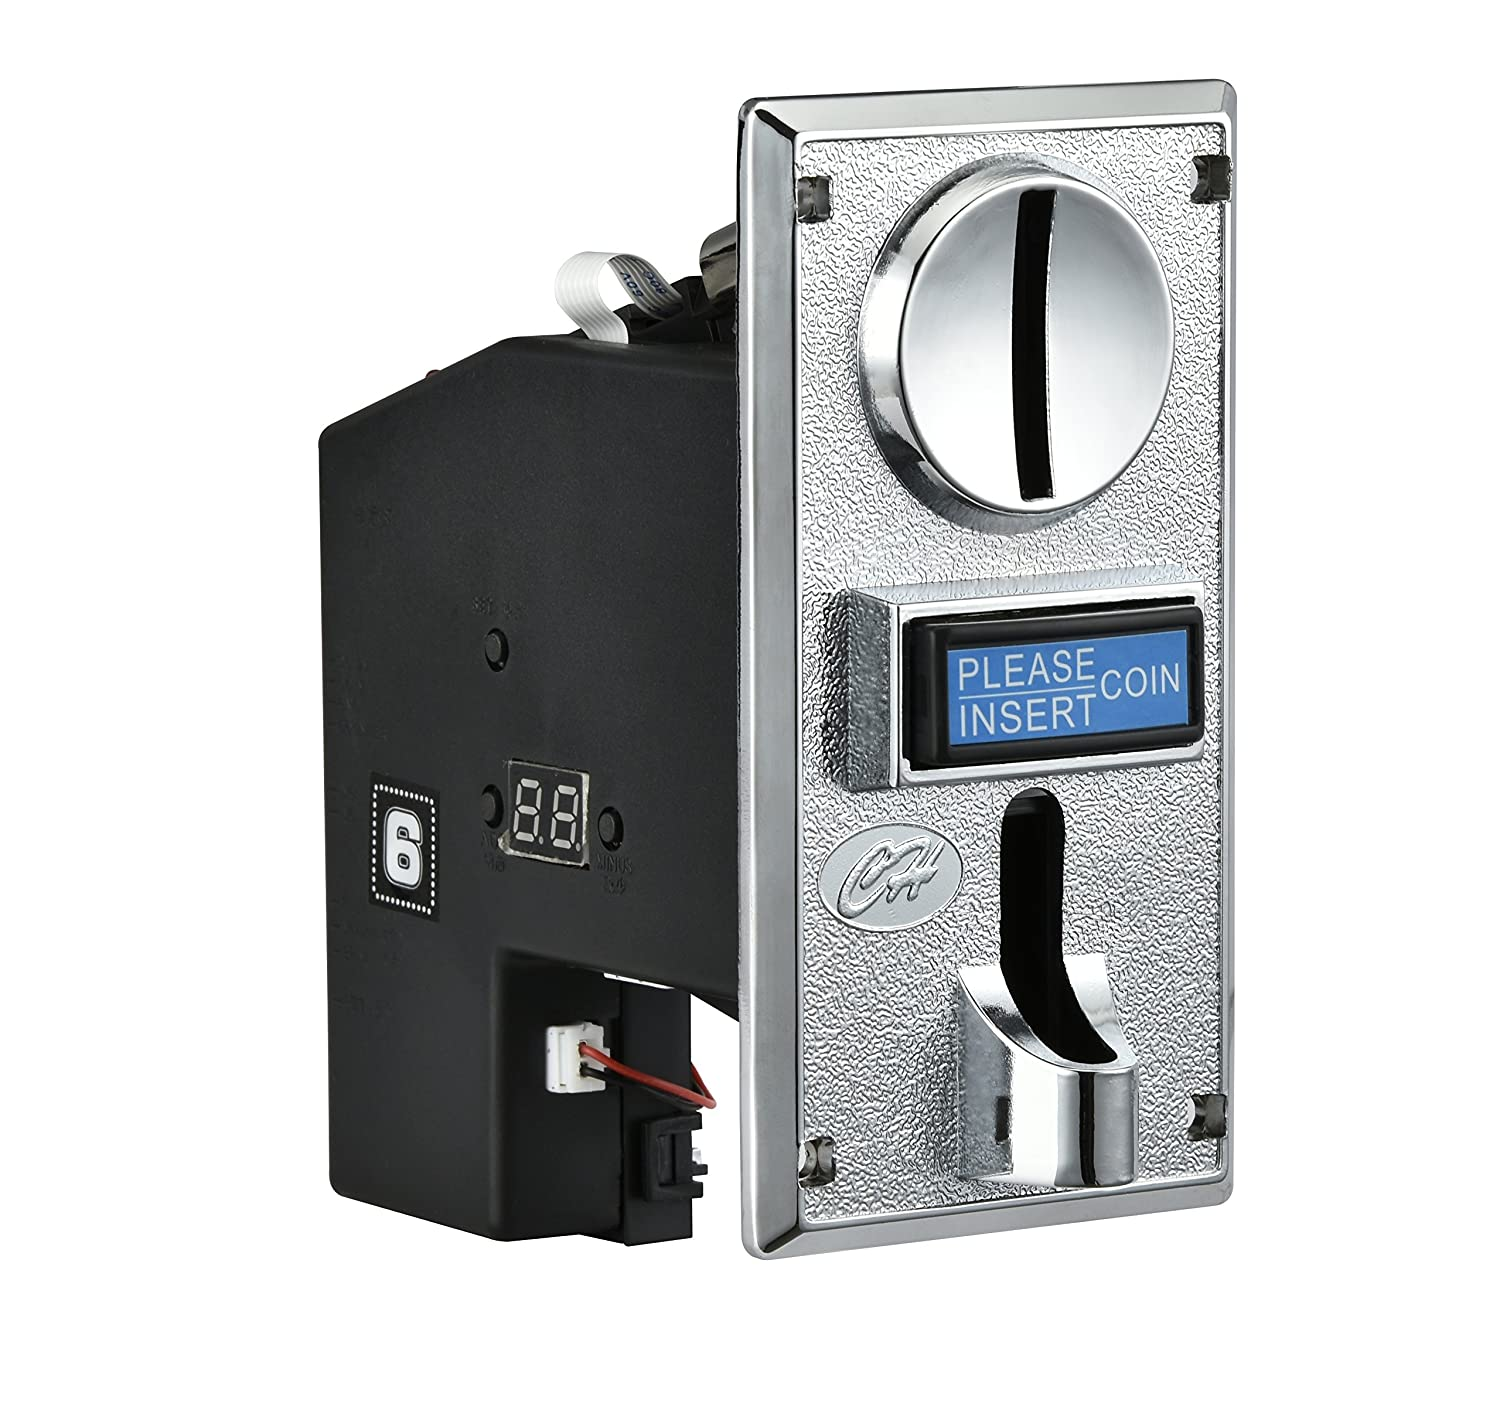 Sintron] Multi Coin Acceptor Selector CH-926 and Timer ...